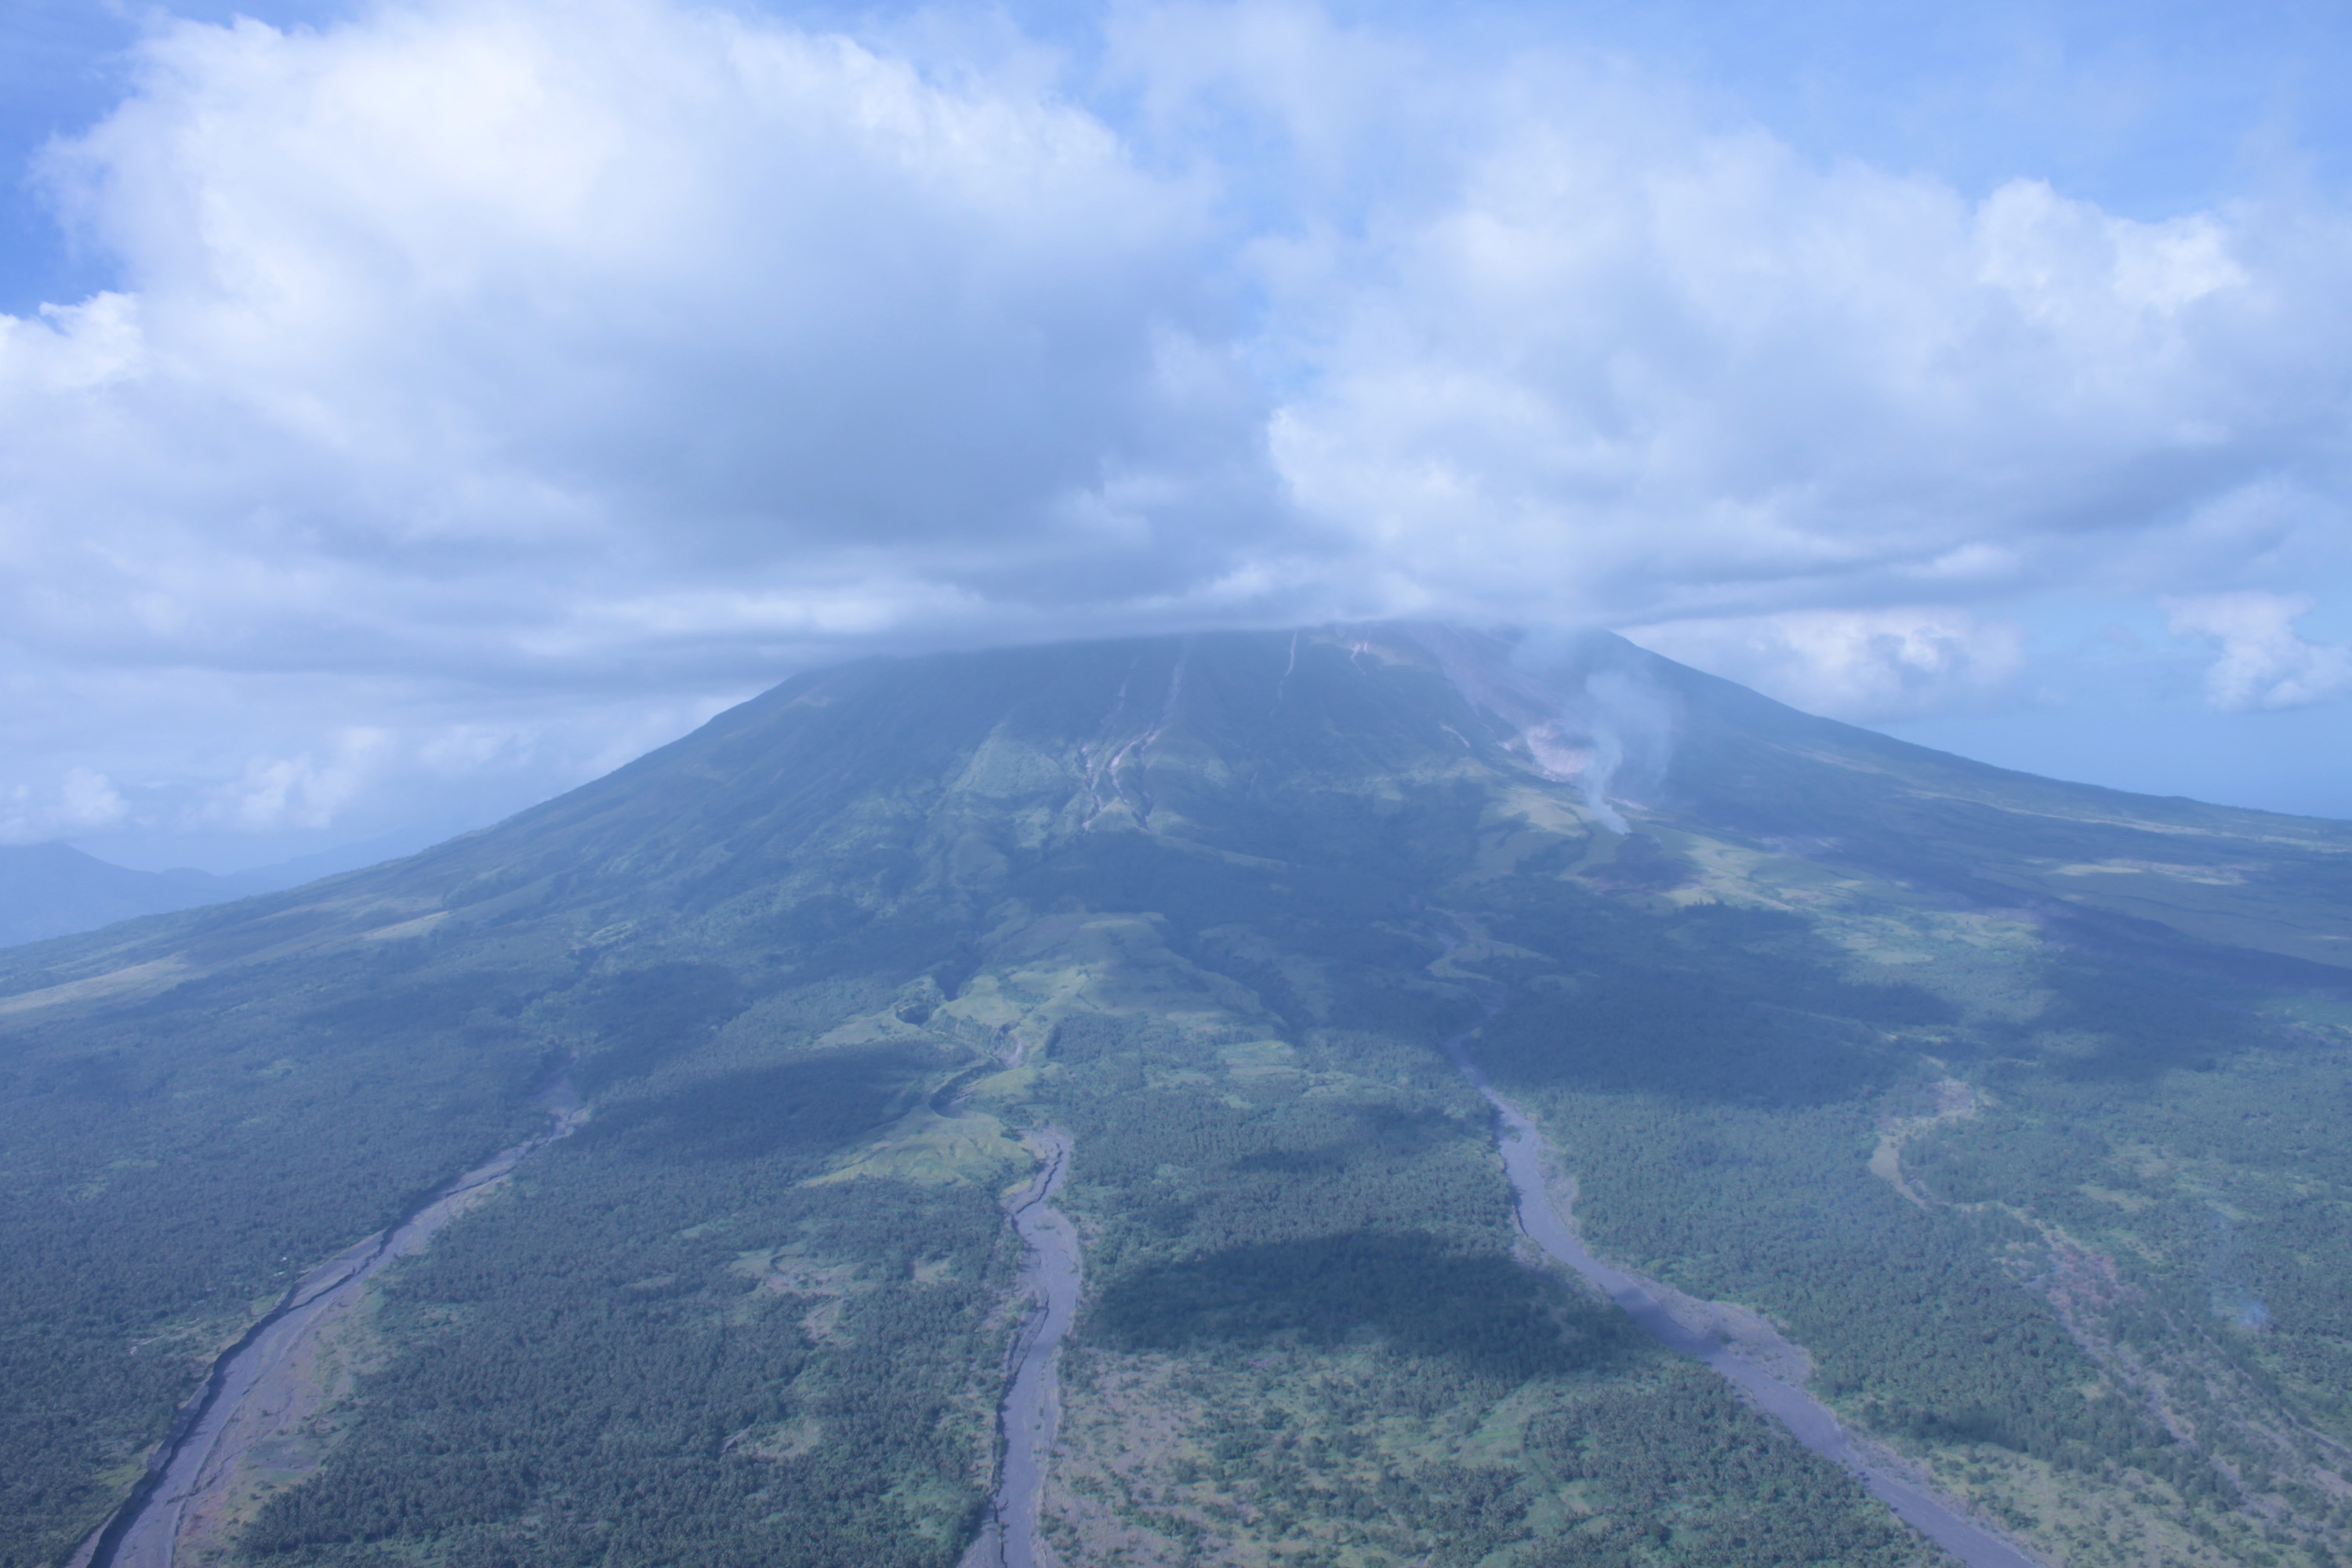 LAHAR FLOW. Phivolcs warns of lahar flow following heavy rainfall over Albay. Photo by Rhaydz Barcia/Rappler